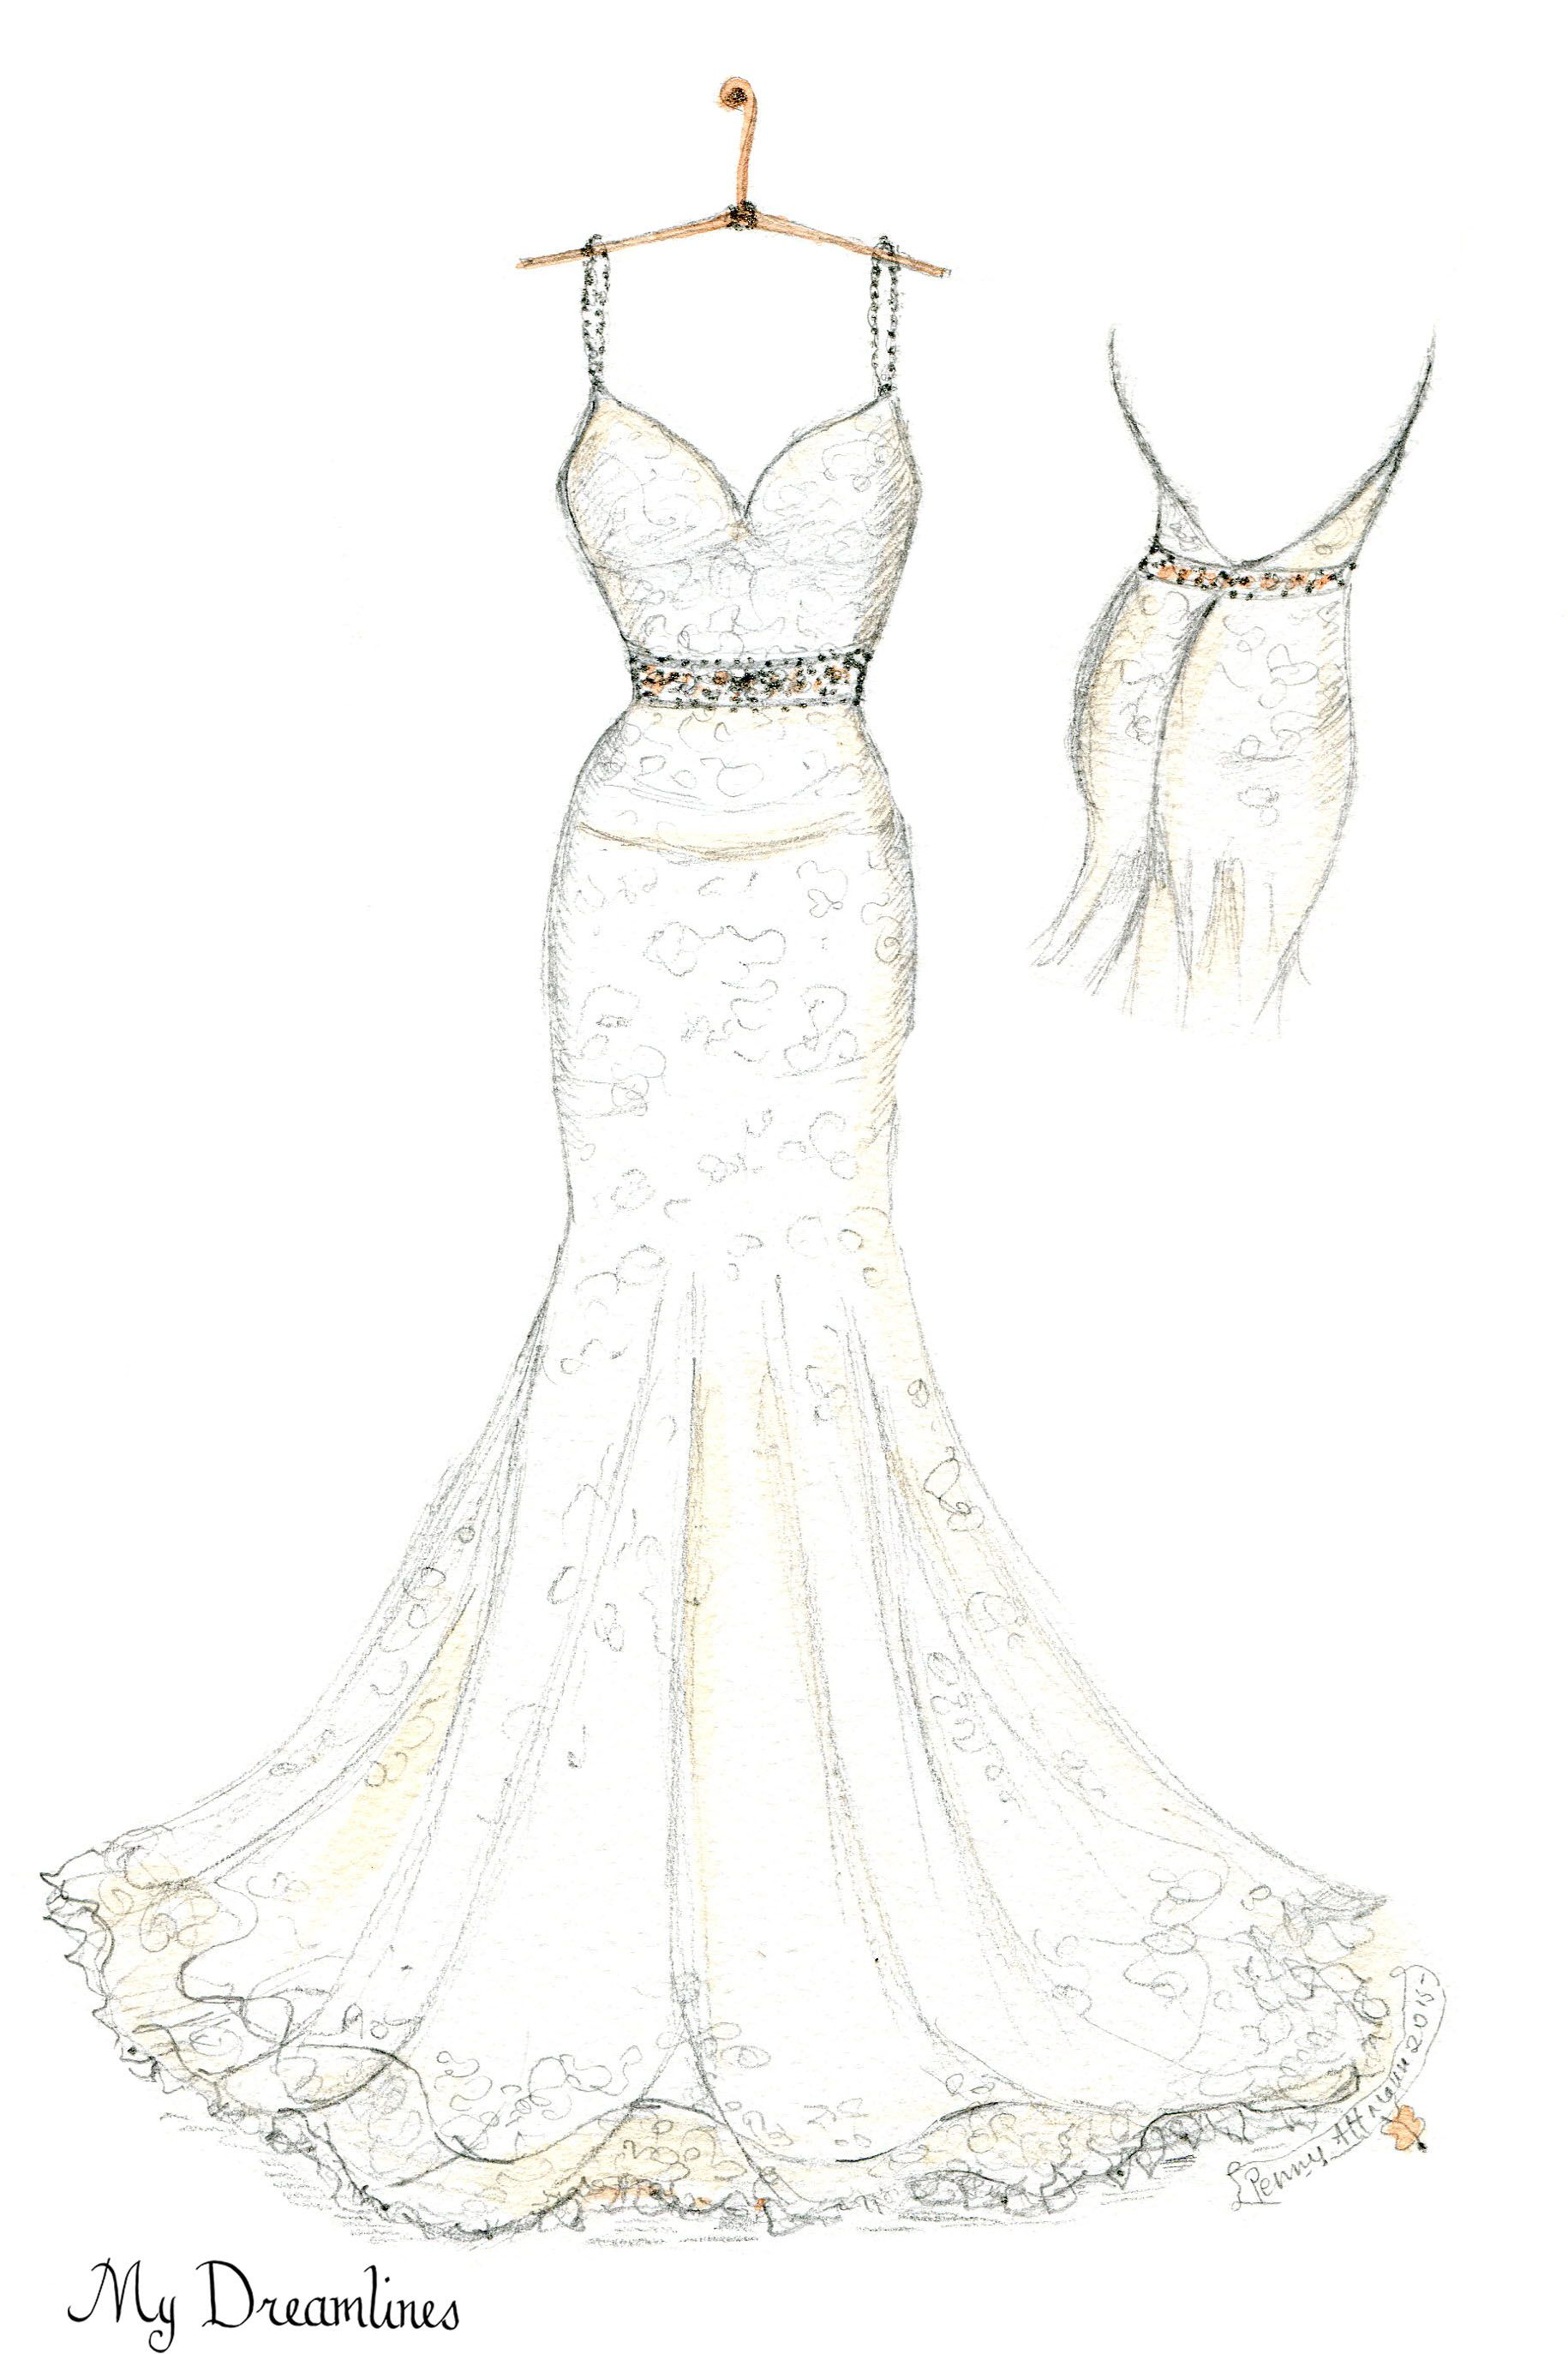 Wedding Dress Sketch Created By Dreamlines Mydreamlines: Fashion Sketches Italian Wedding Dresses At Websimilar.org